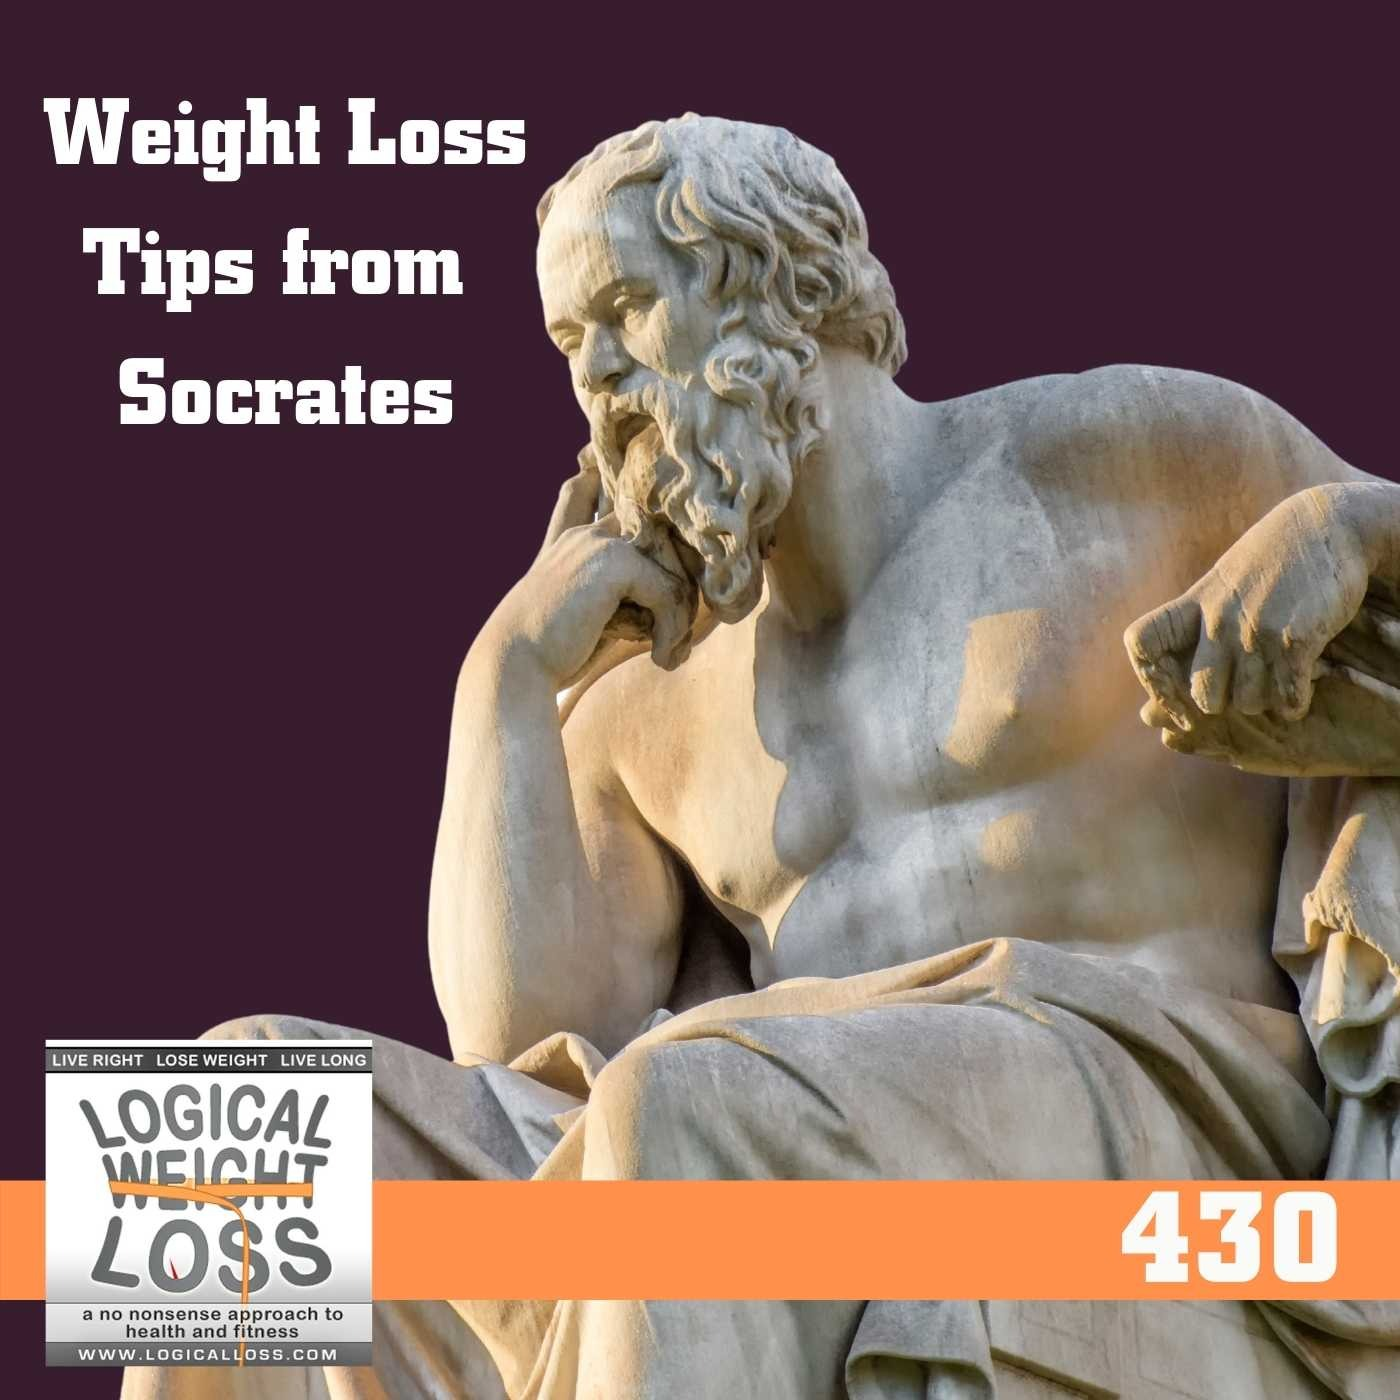 Weight Loss Tips From Socrates